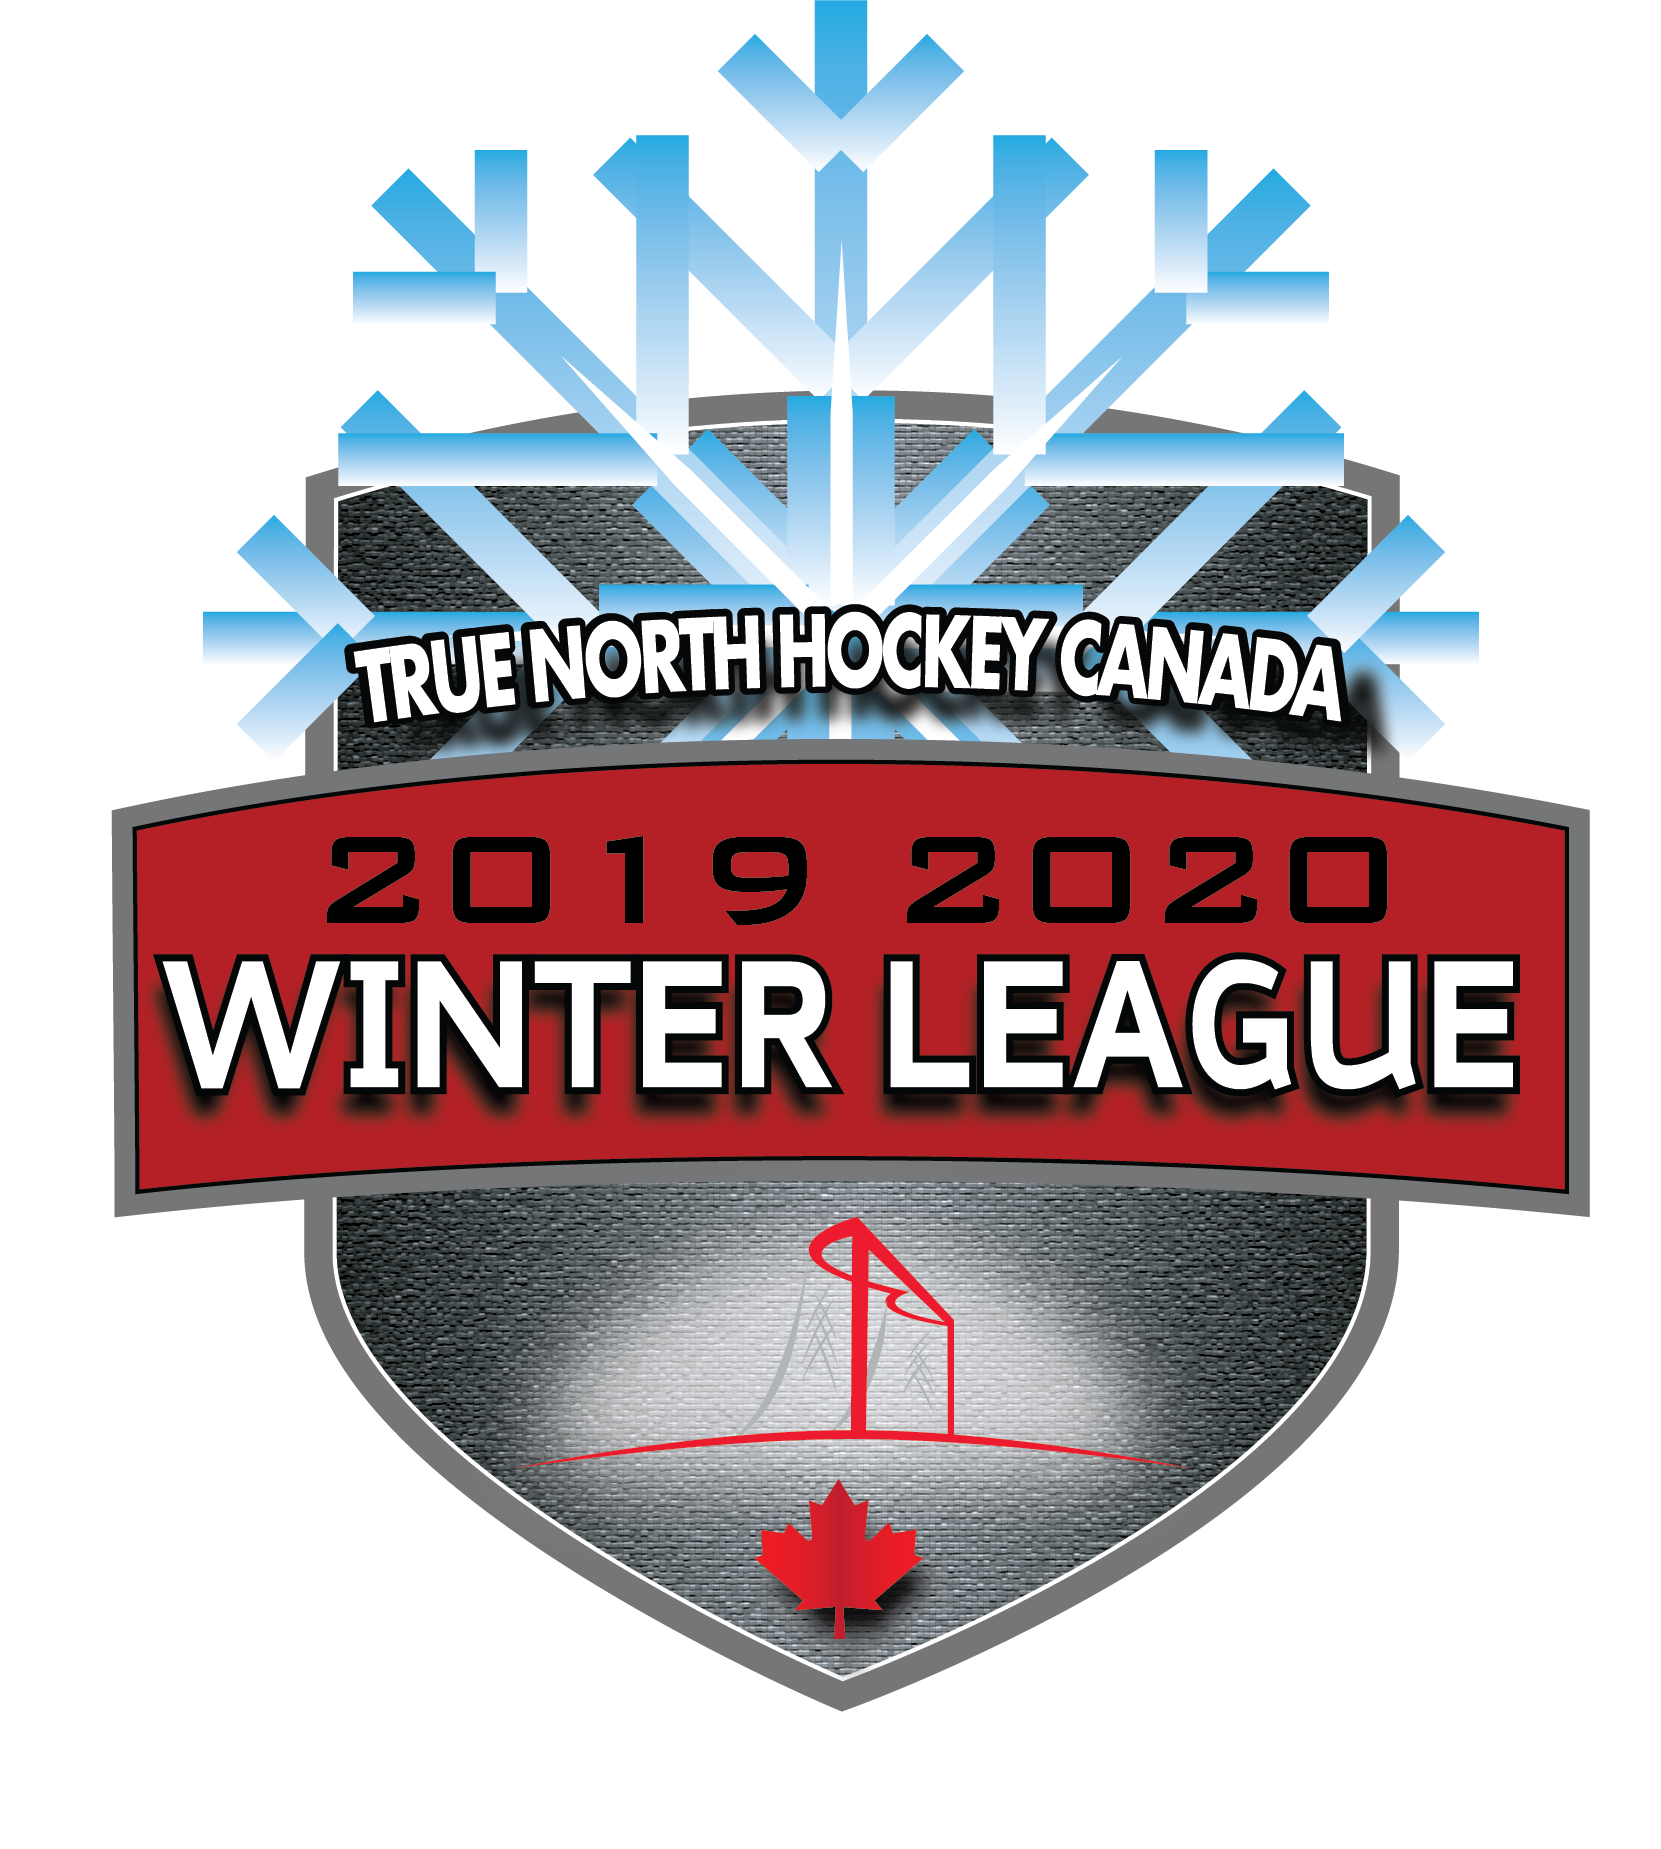 TNHC 2019-2020 Winter League